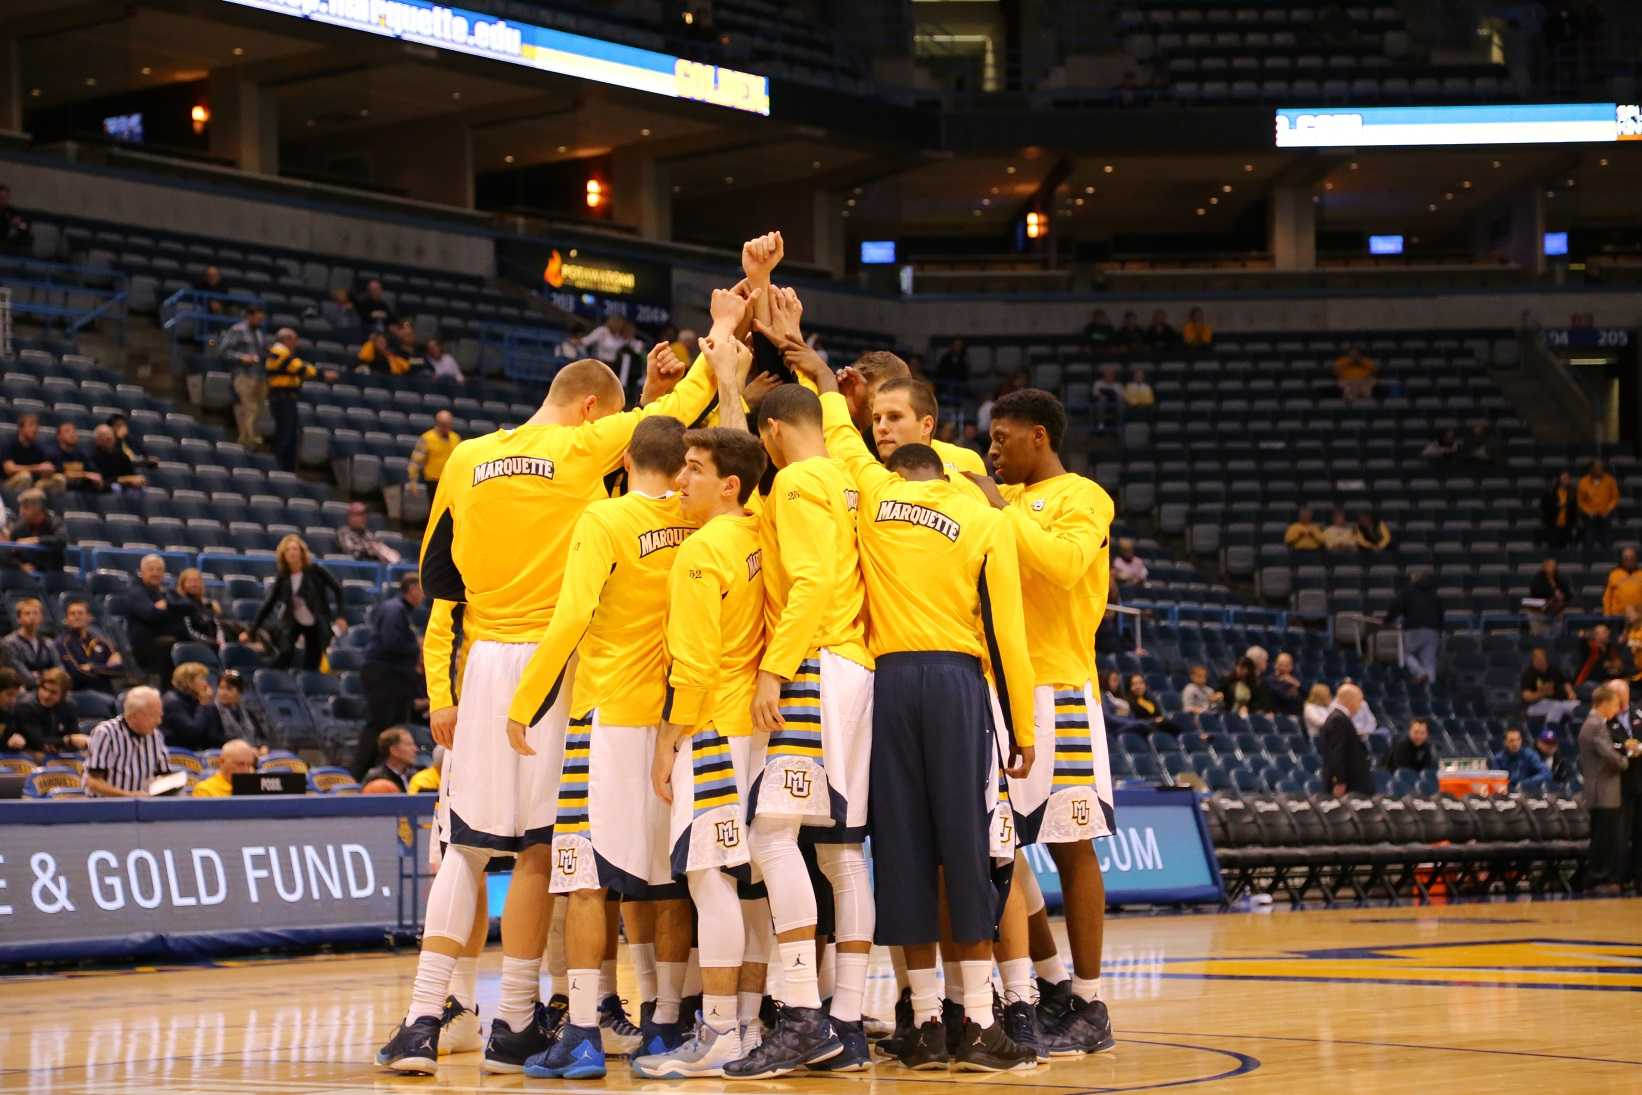 2015 - '16 men's basketball team Photo by Yue Yin /yue.yin@marquette.edu